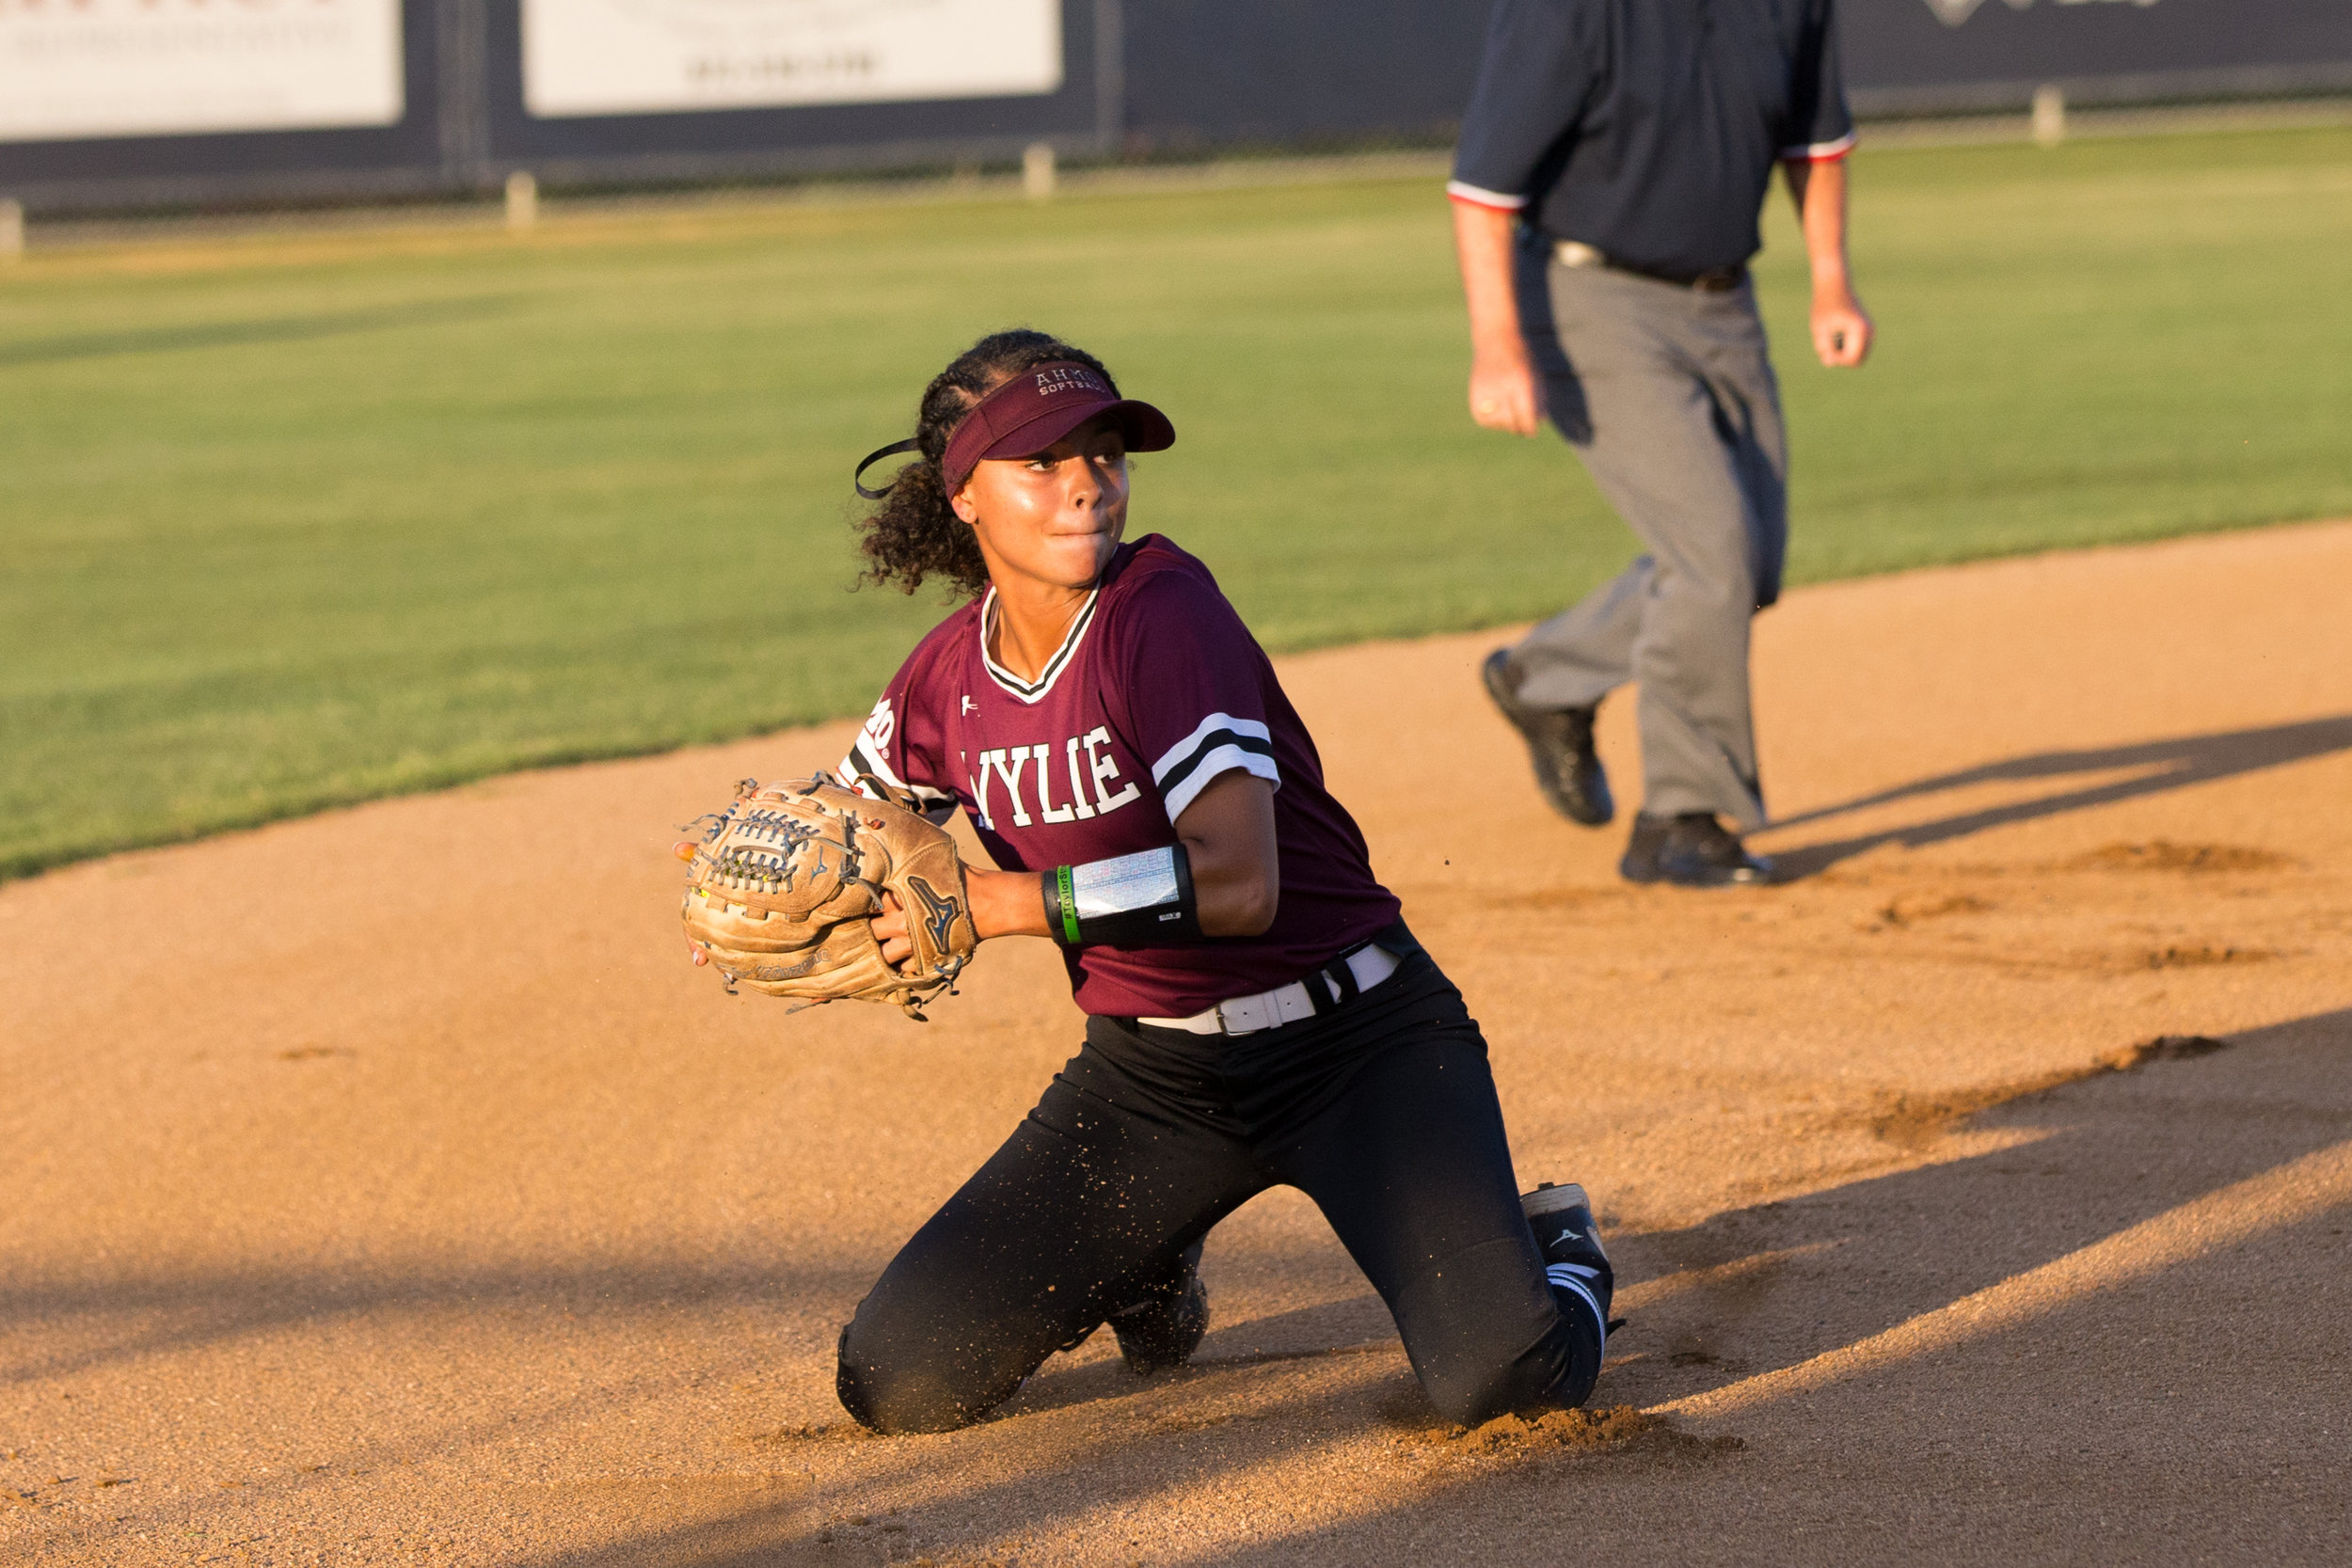 5_18 Wylie Softball-132.jpg